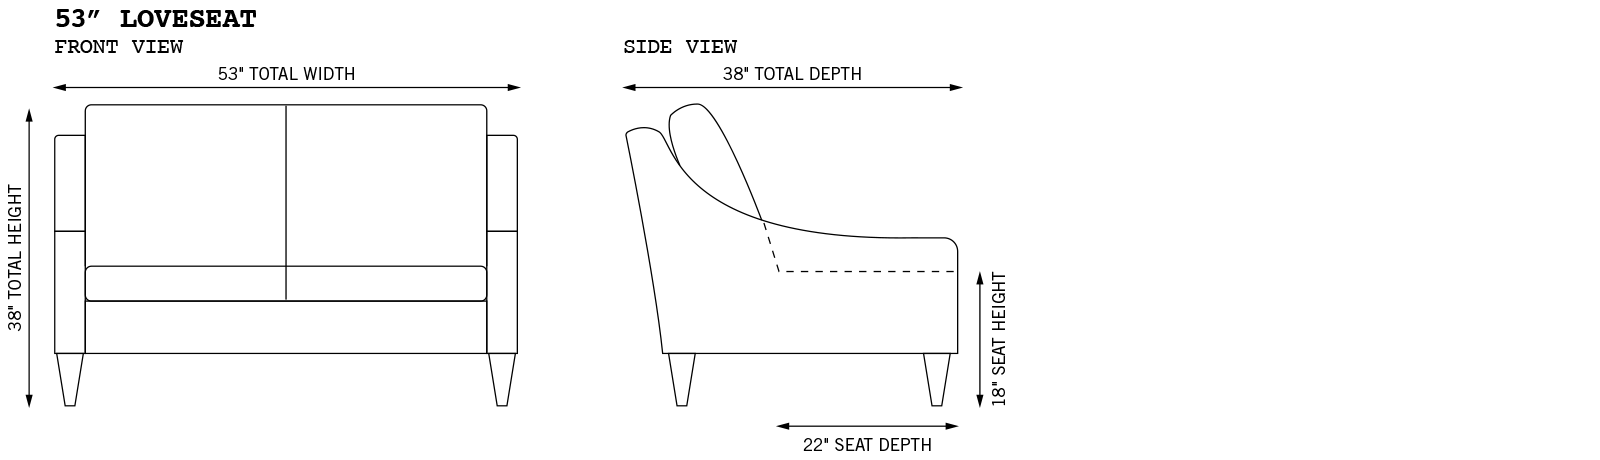 Gracie Loveseat Dimensions